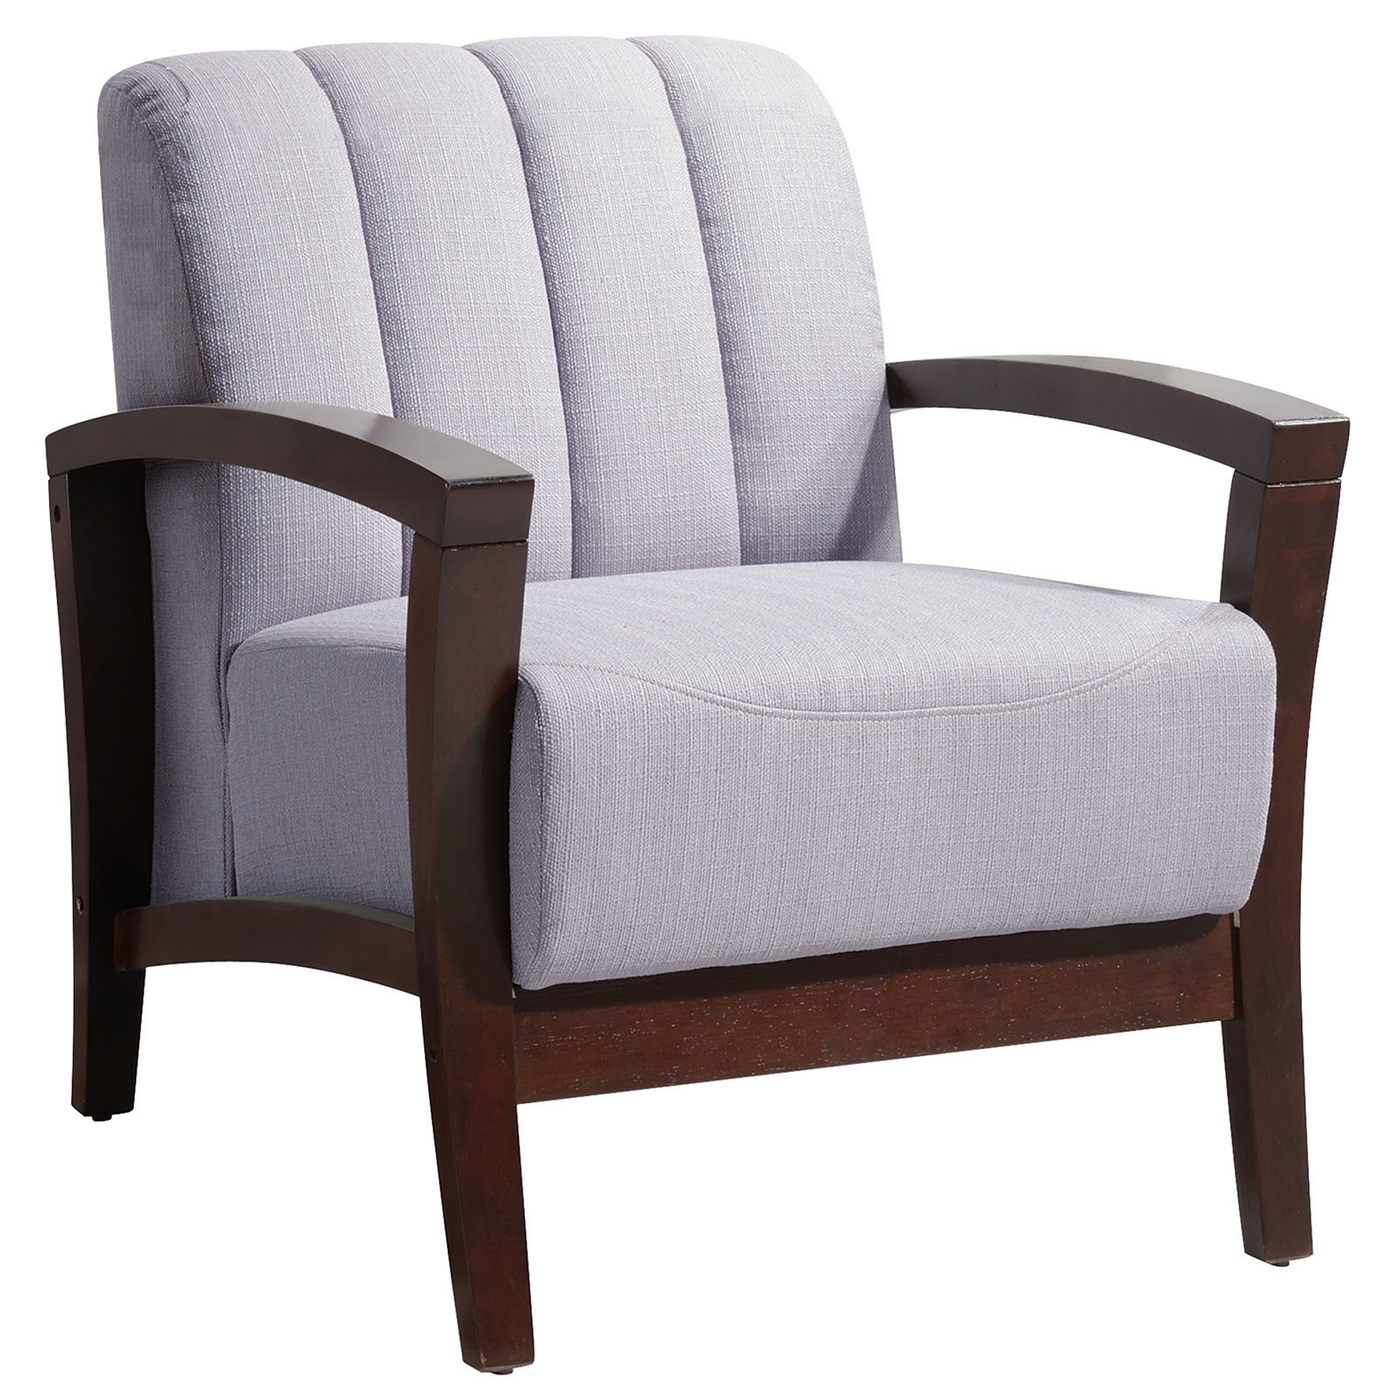 Wood Base Chairs ~ Enamor modern upholstered armchair with solid wood base